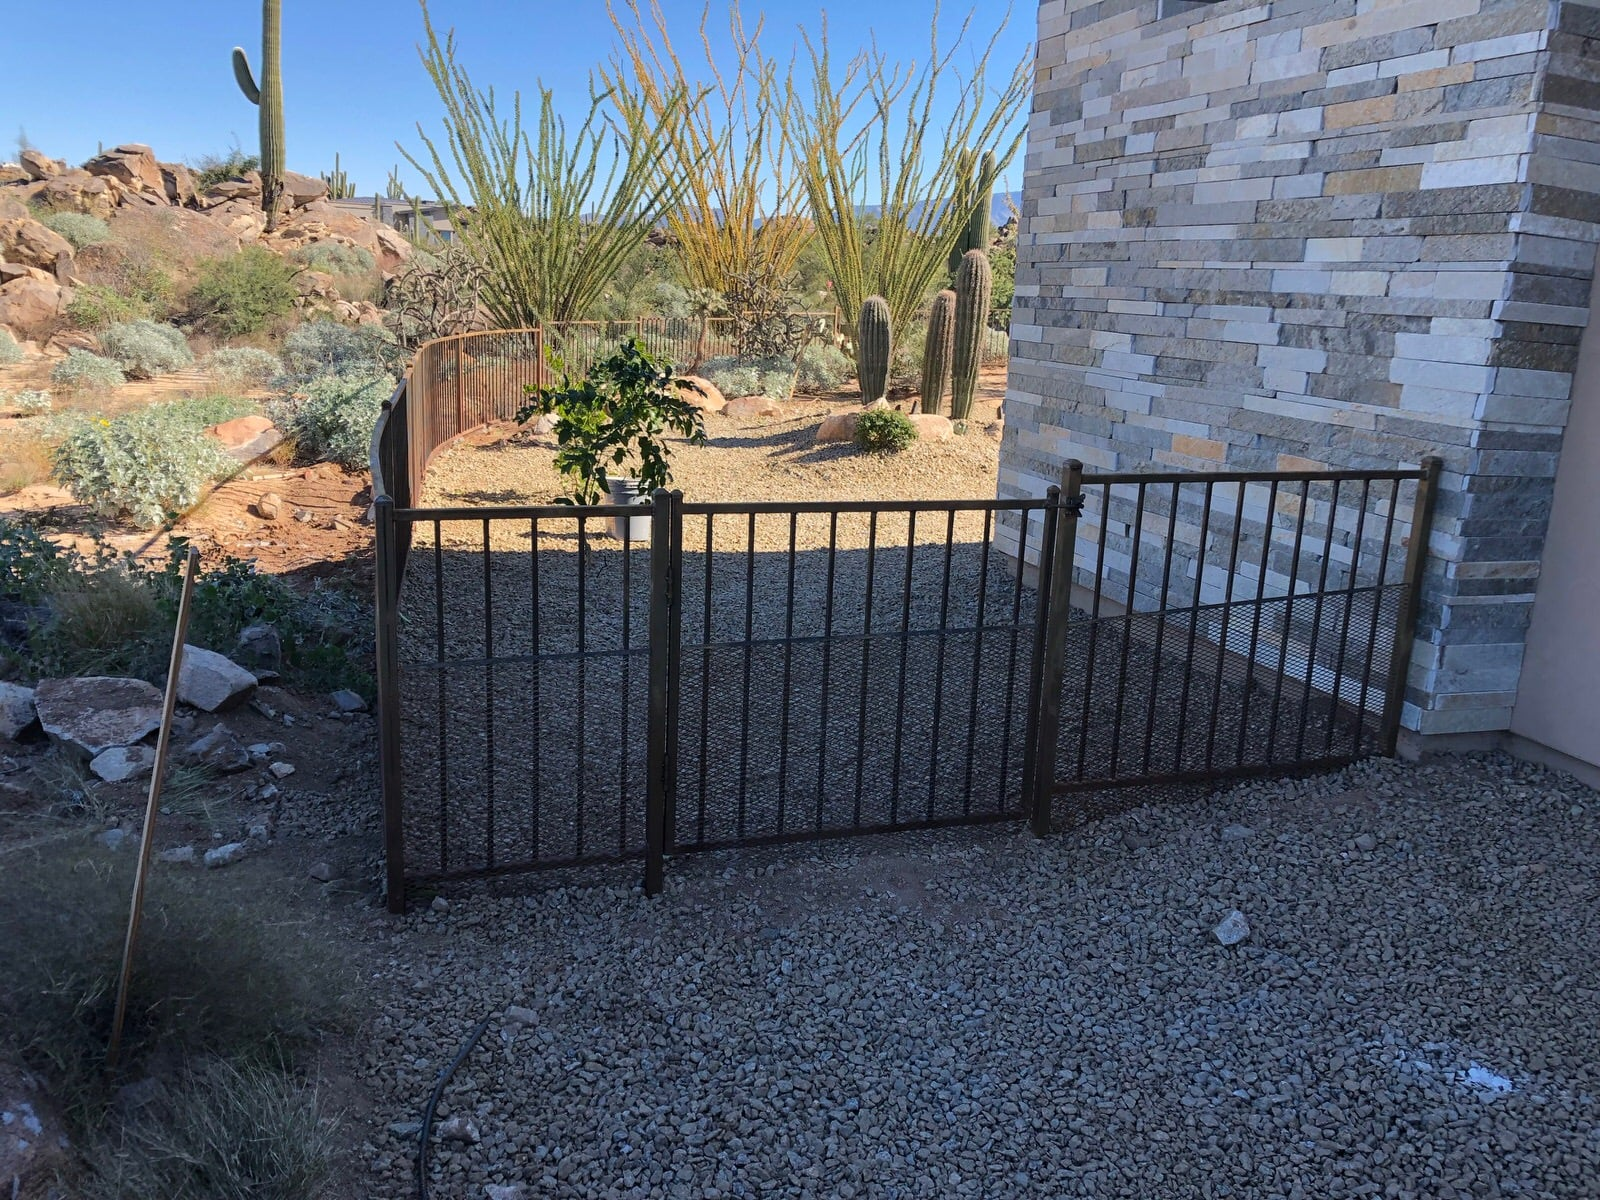 Low stepped iron fence with trellis backing 0255 - Installed in the Foothills of Tucson